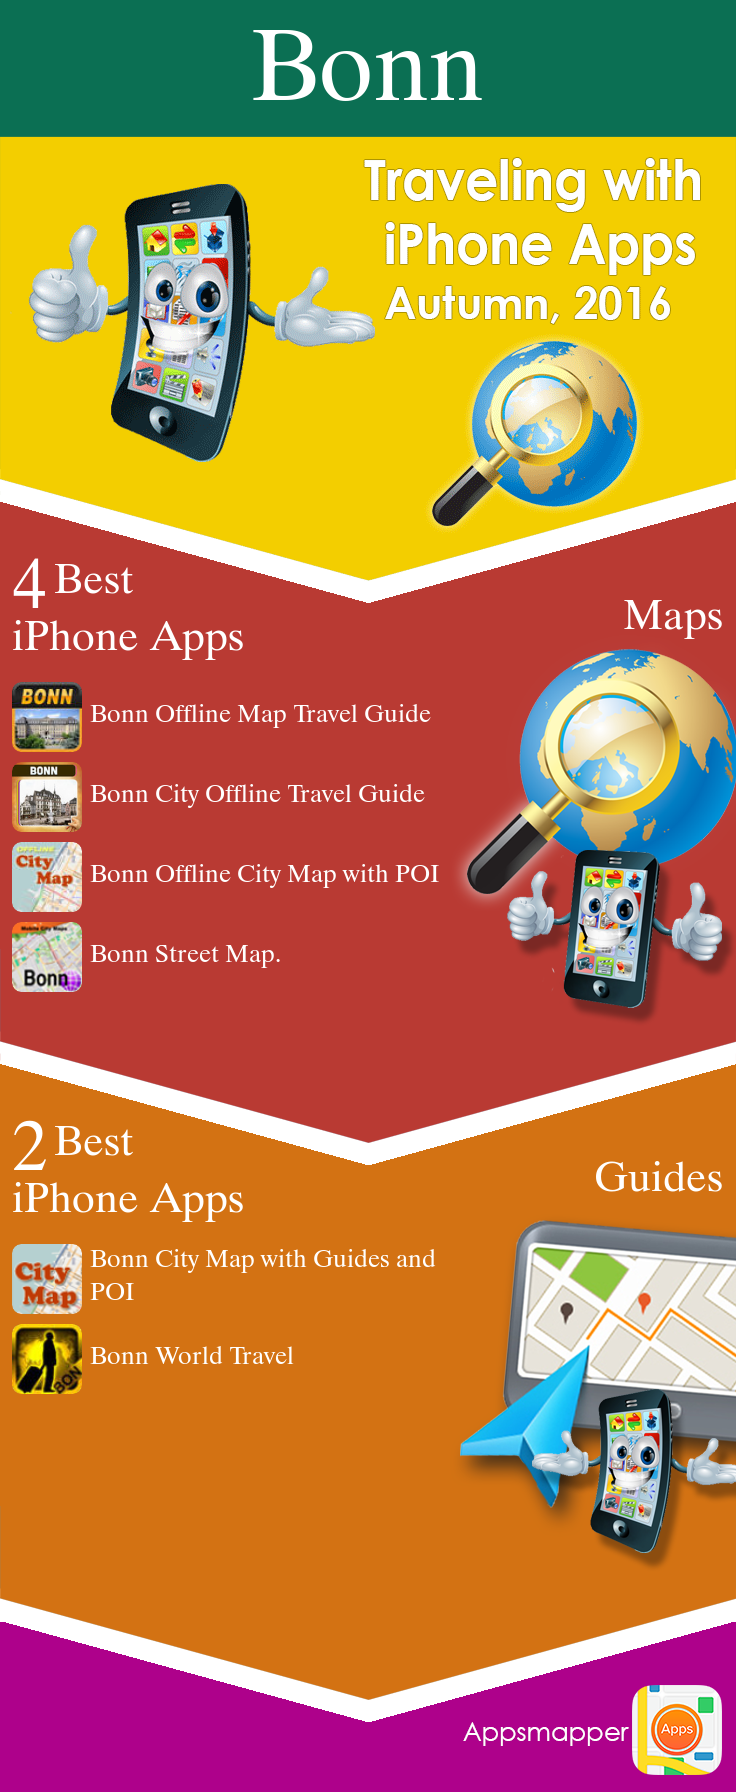 Bonn iPhone apps: Travel Guides, Maps, Transportation, Biking, Museums, Parking, Sport and apps for Students.